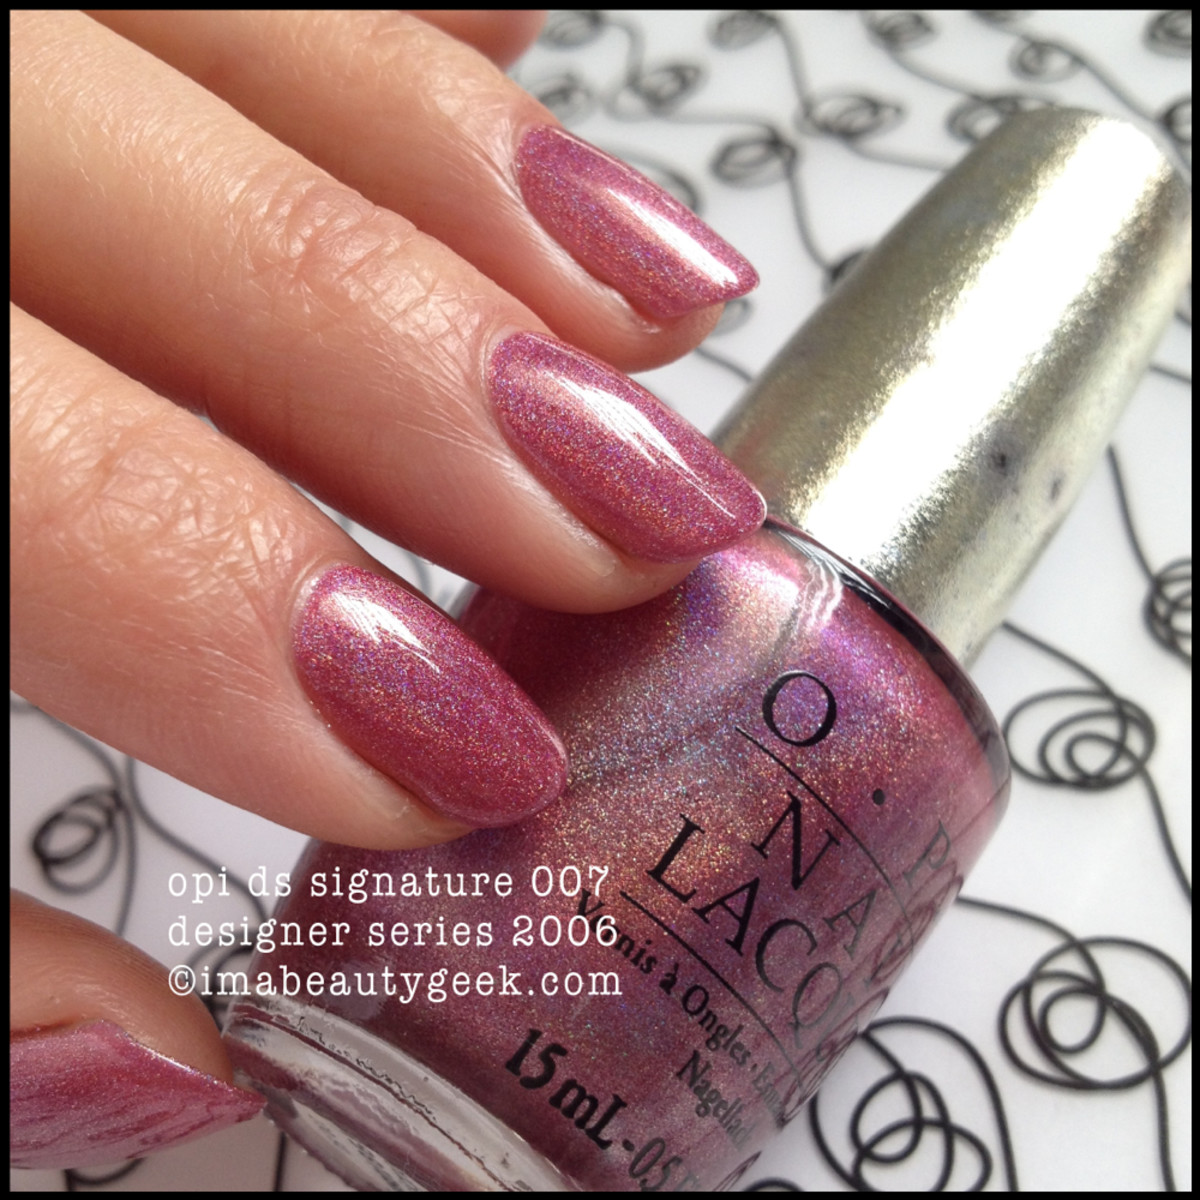 OPI DS Signature 007 Designer Series 2006